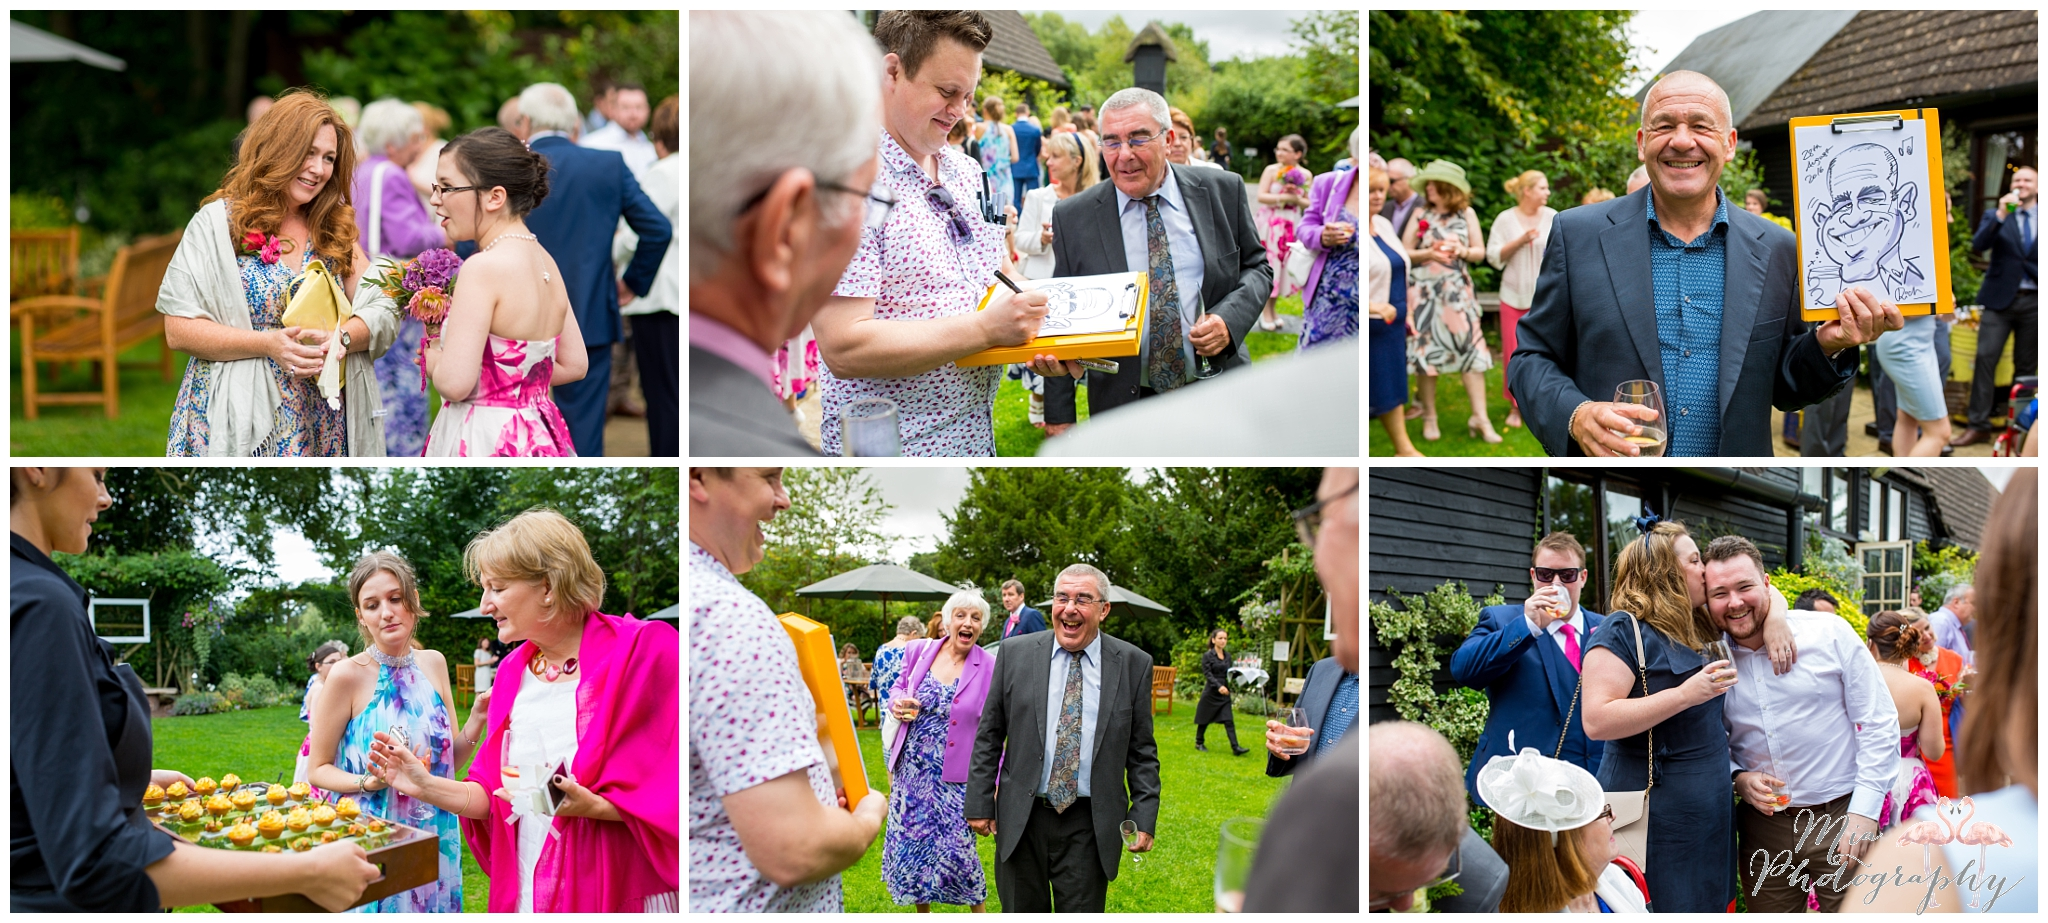 Canapes and laughing outside the barn